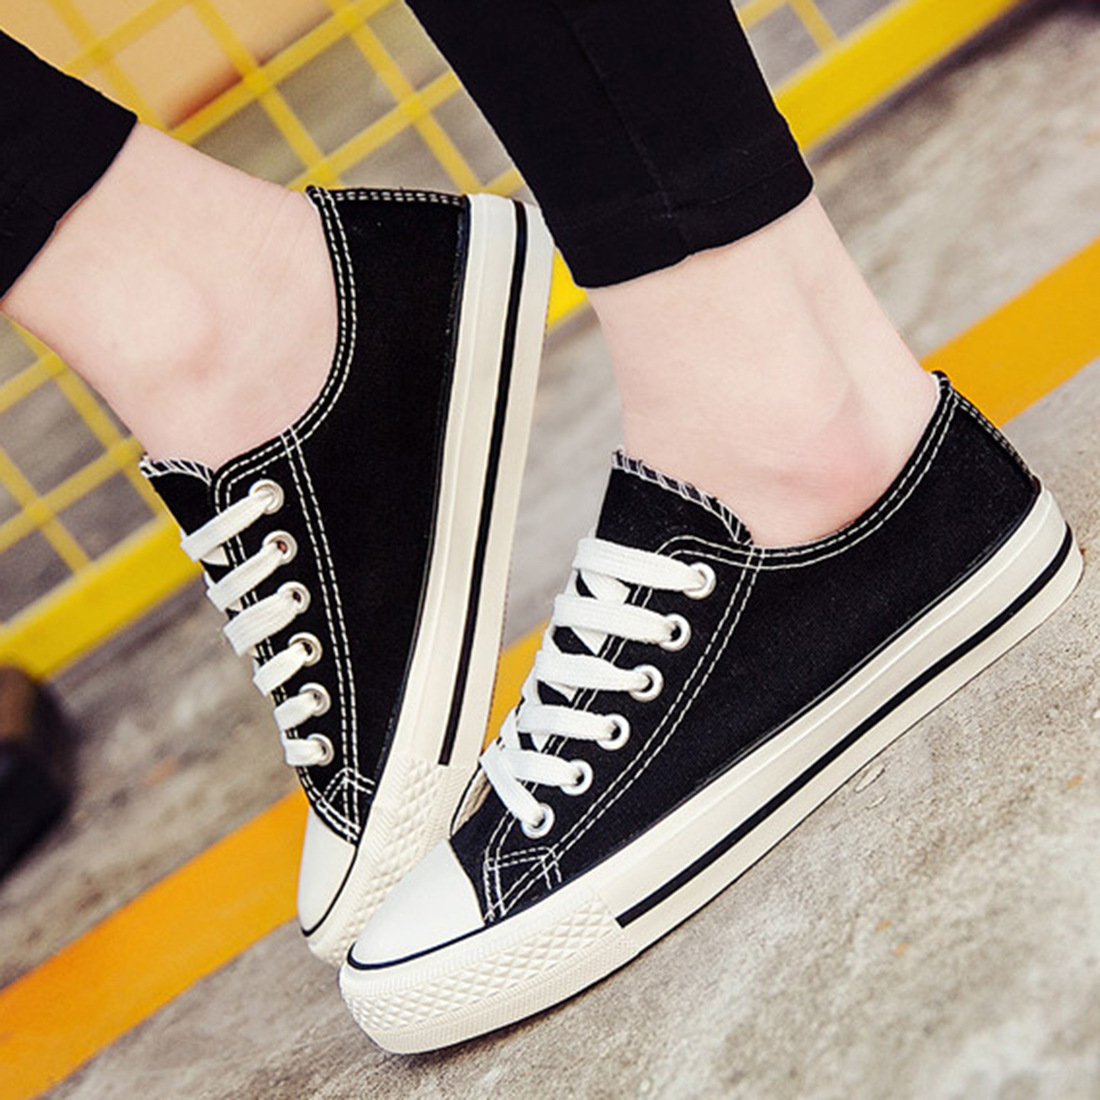 Free shipping summer autumn high quality low canvas shoes women breathable flat-bottomed single classic women's casual shoes fashion casual low top shoes heavy bottomed muffin shoes celebrity same paragraph with gold silver trainer shoes free shipping